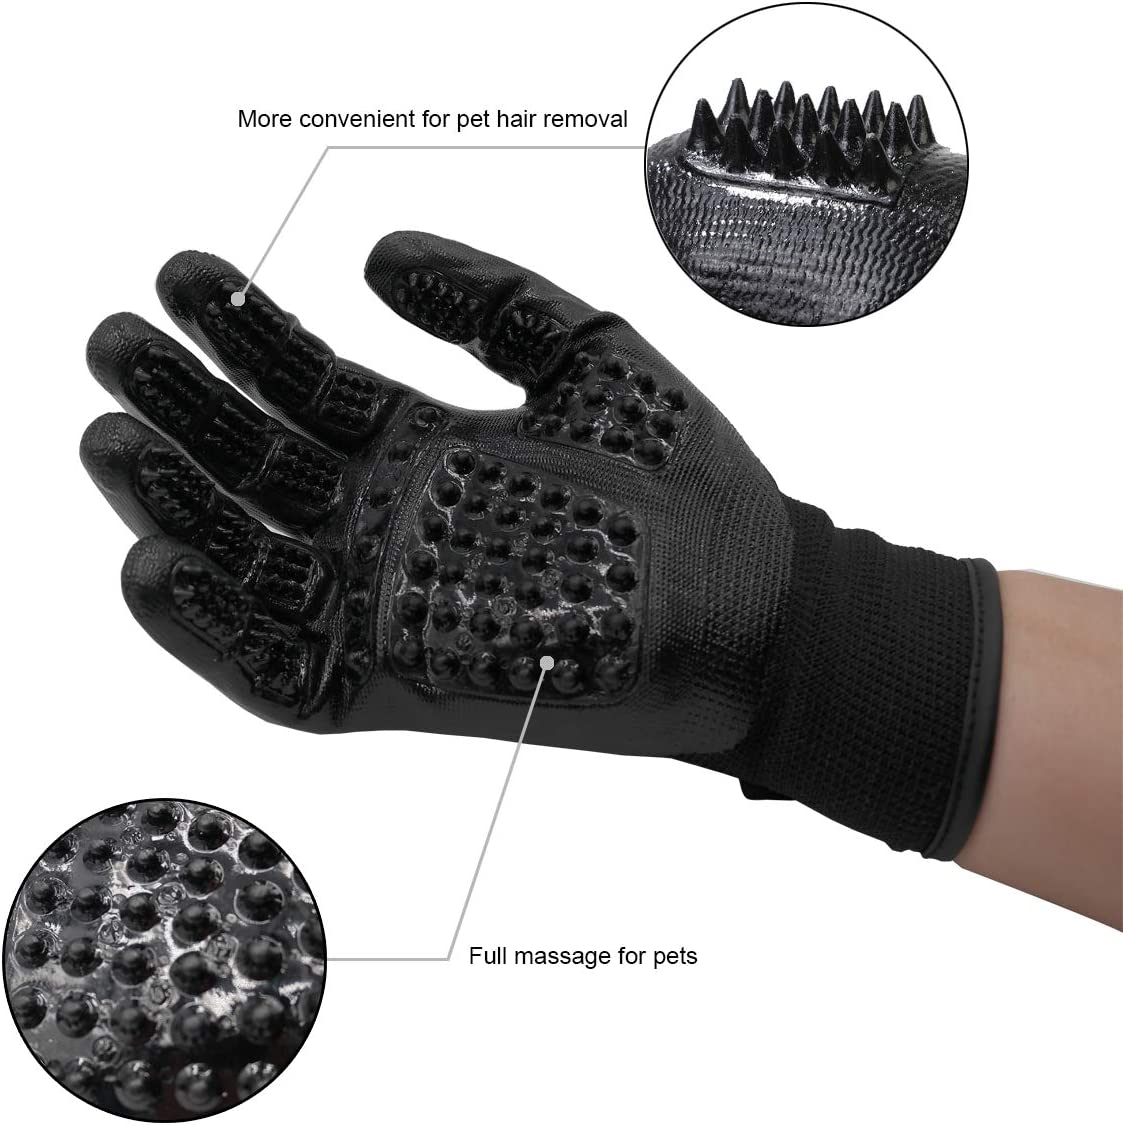 Hair Removal Mitts & Rollers PamerCamel Pet Grooming Gloves Efficient Hair  Removal Gloves,1 Pair of Pet Hair Brush Gloves,Pet Massage Gloves,Suitable  for Dogs Cats and Horses Pet Supplies